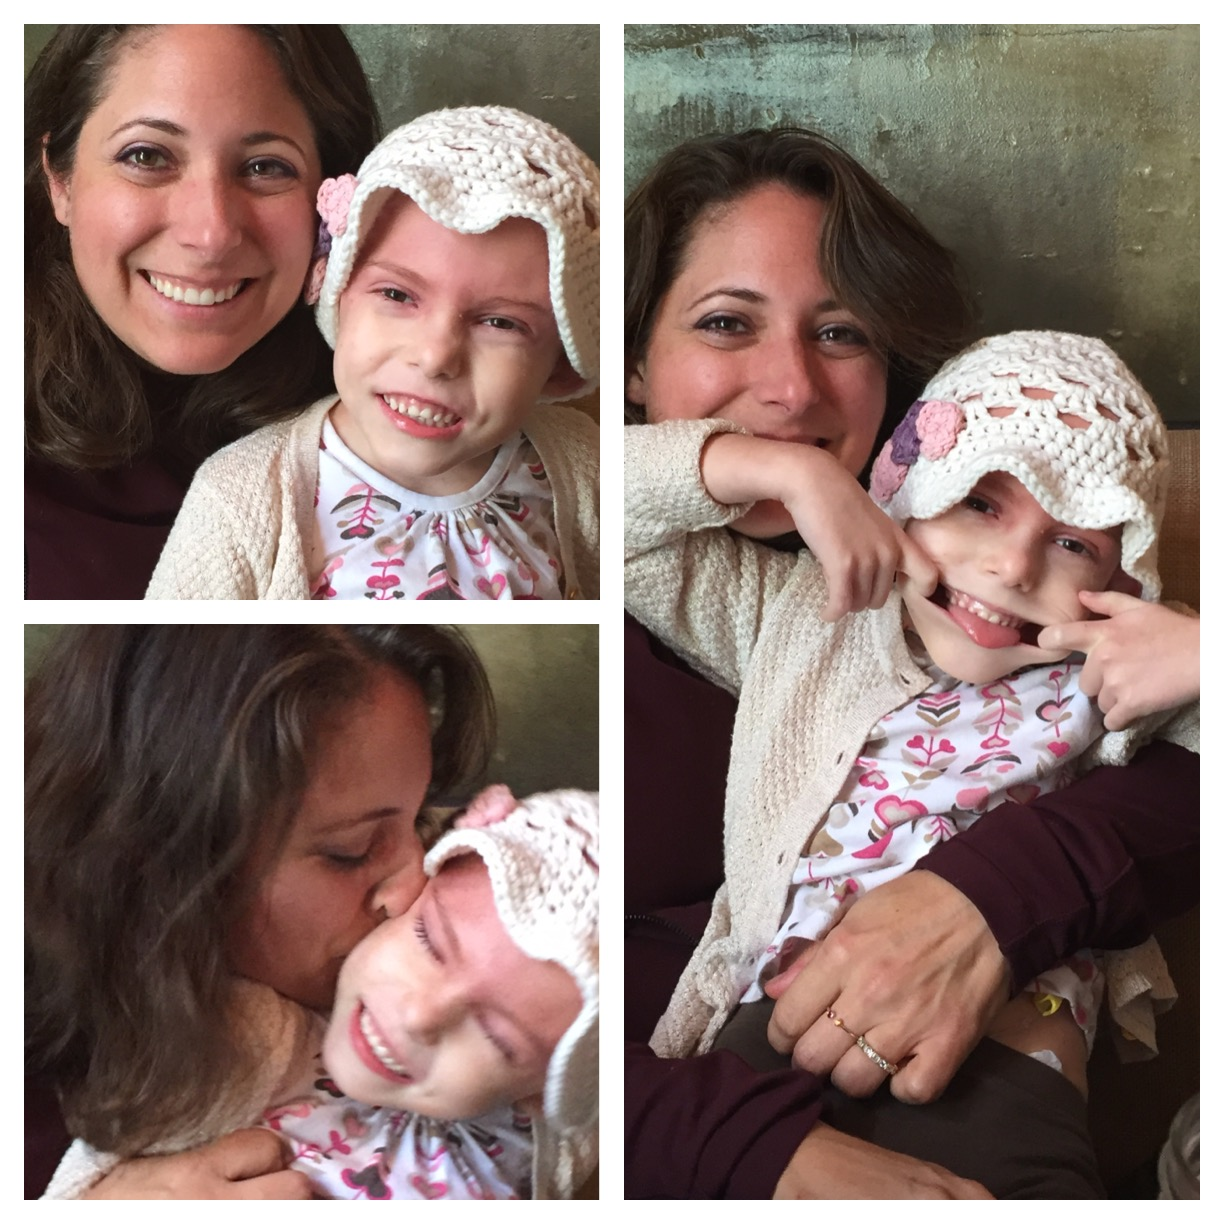 Pictured with her Auntie Shelley, after a radiation treatment. Amelita had bouts of rage, anger, uncontrollable emotional outbursts (which some parents warned us about, the heat from radiation just seems to have that affect), yet many days we were able to take her to eat, have fun, and bring out that incredible smile! You can visibly see the burn line of demarcation, just past her eyes.